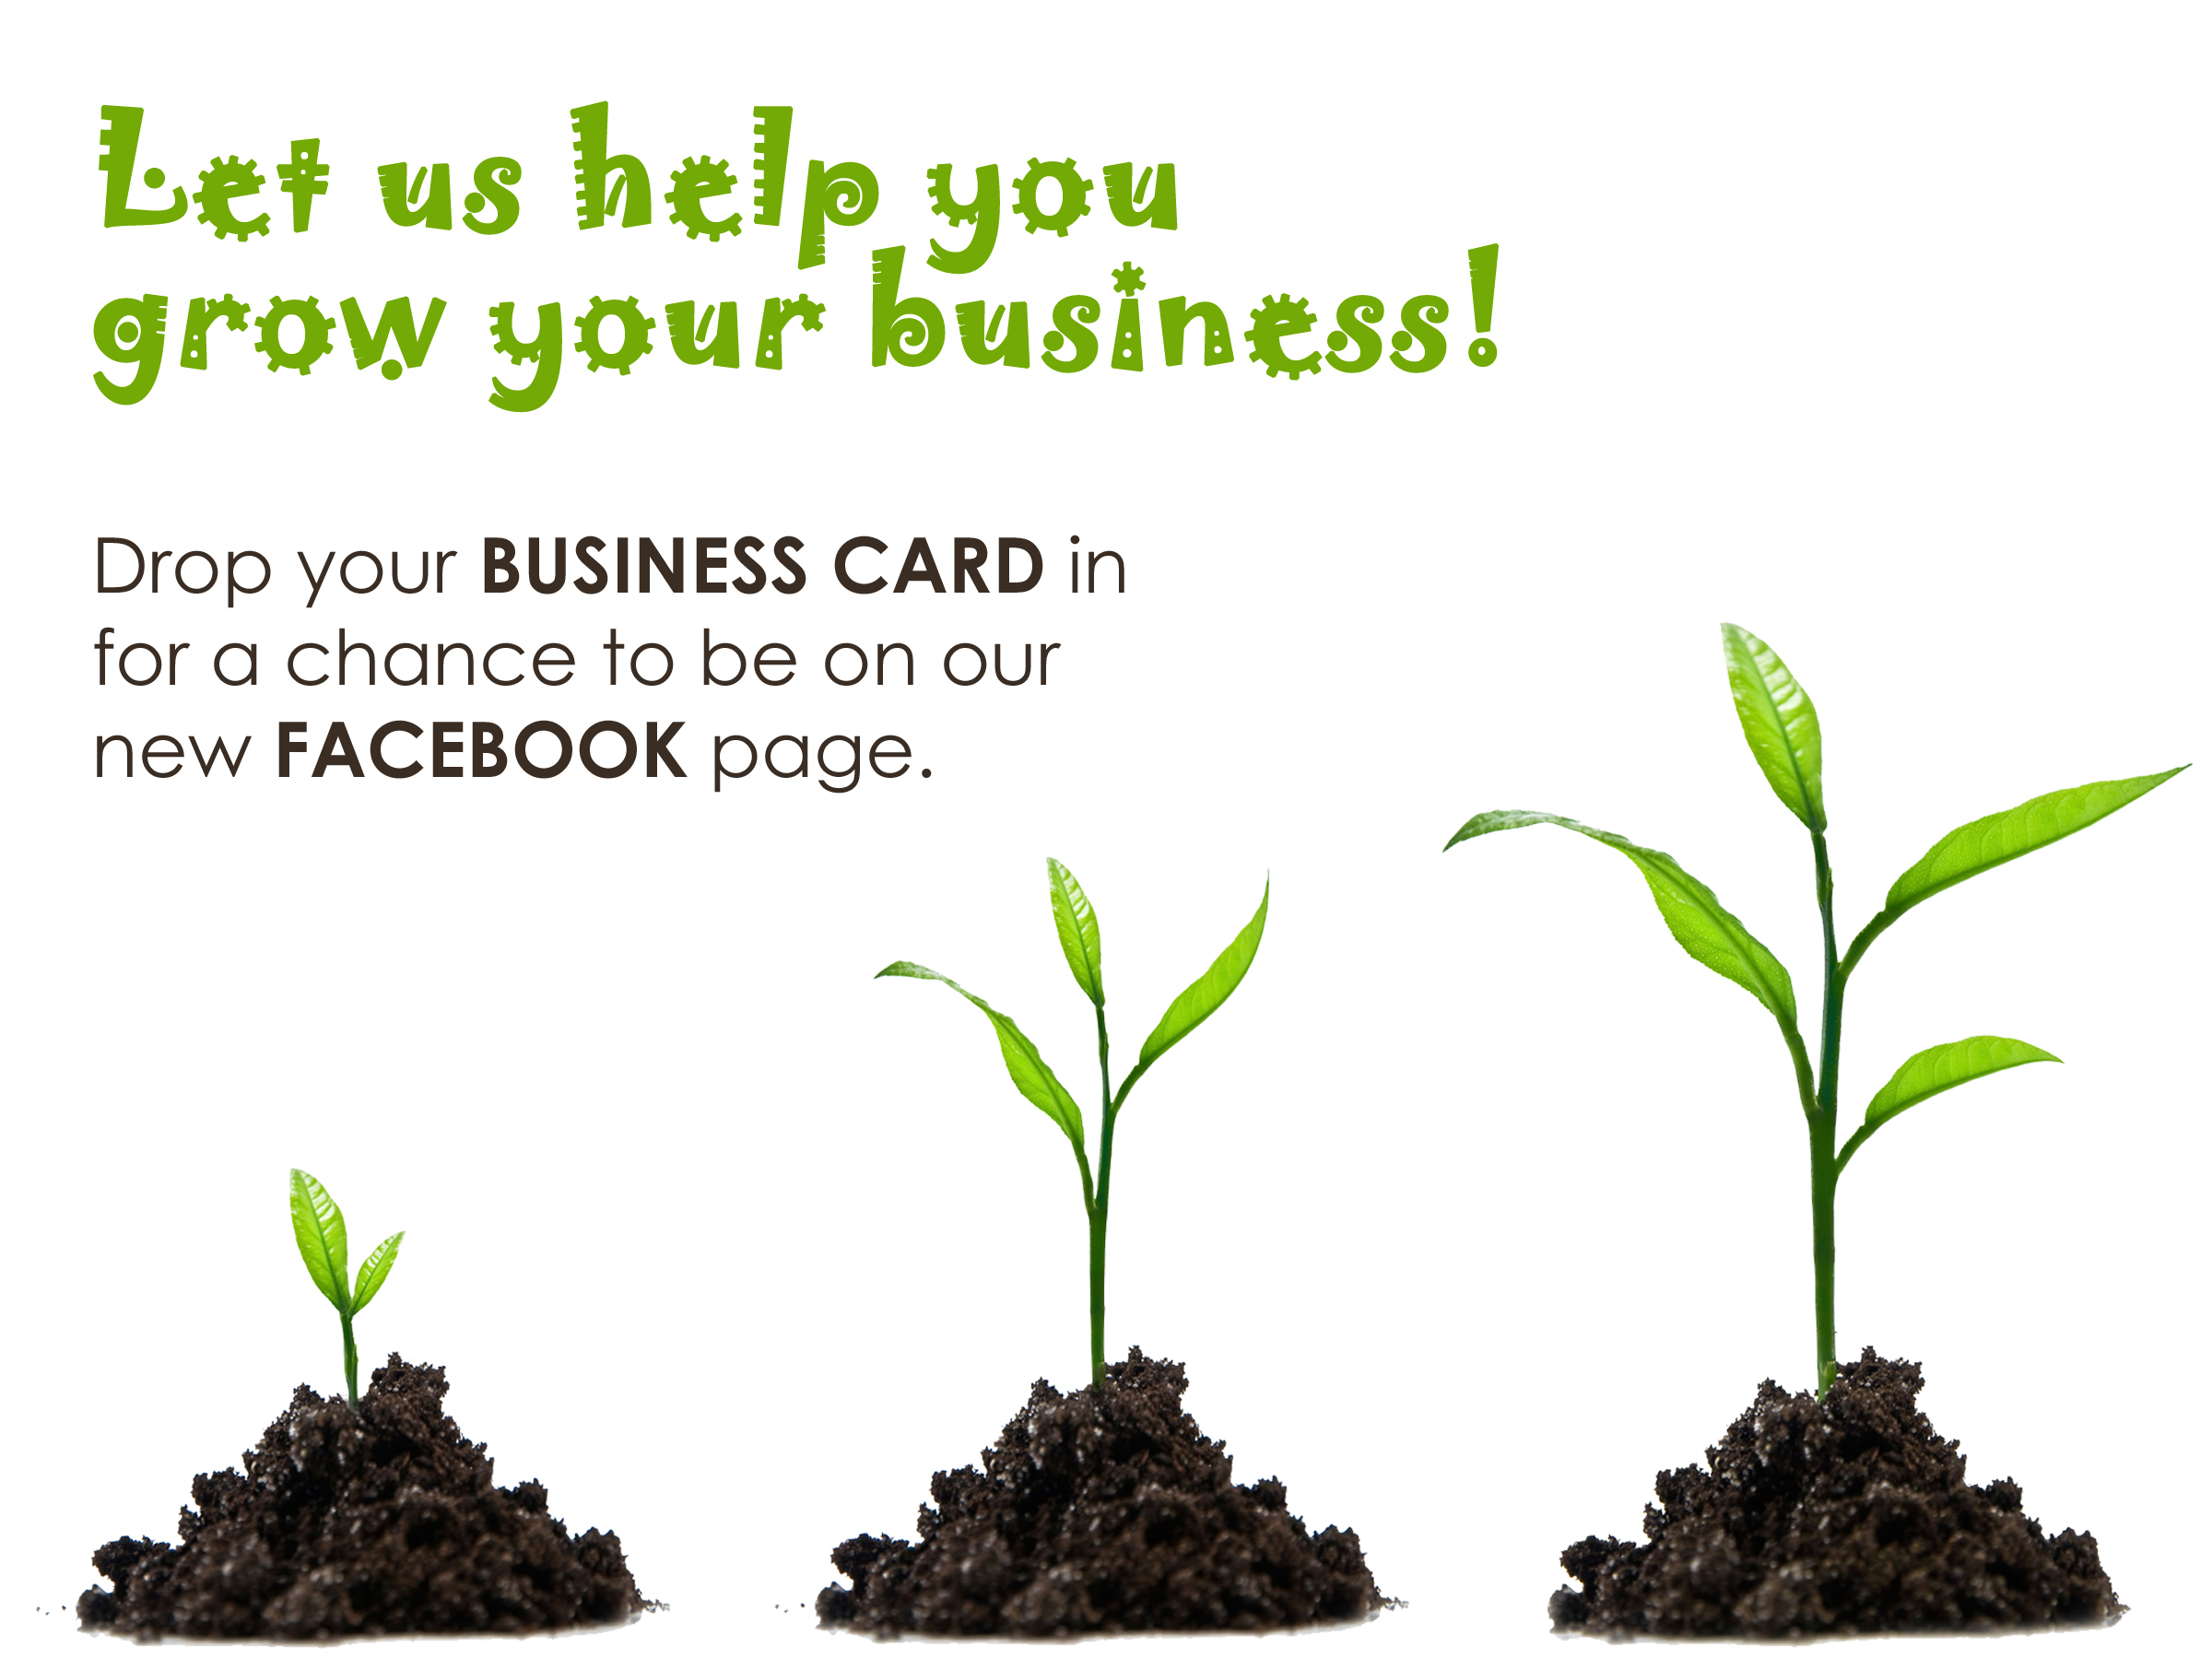 General Insurance Co Ltd Let Us Help You Grow Your Business